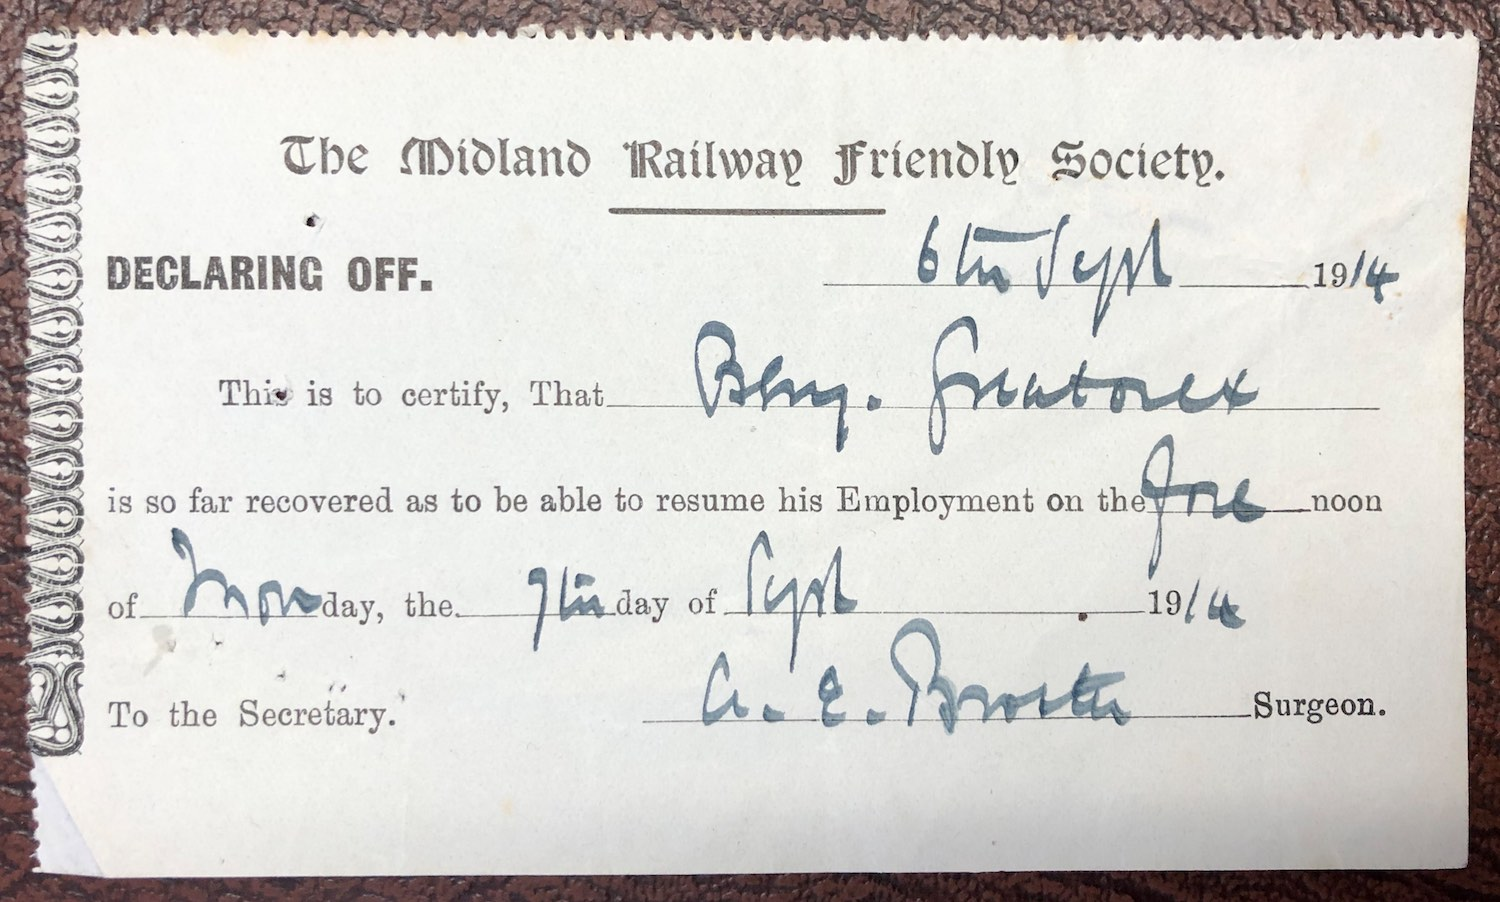 A copy of the Midland Railway Friendly Society 'Declaring off' one Mr. Greatorex as fit to return to work in 1914